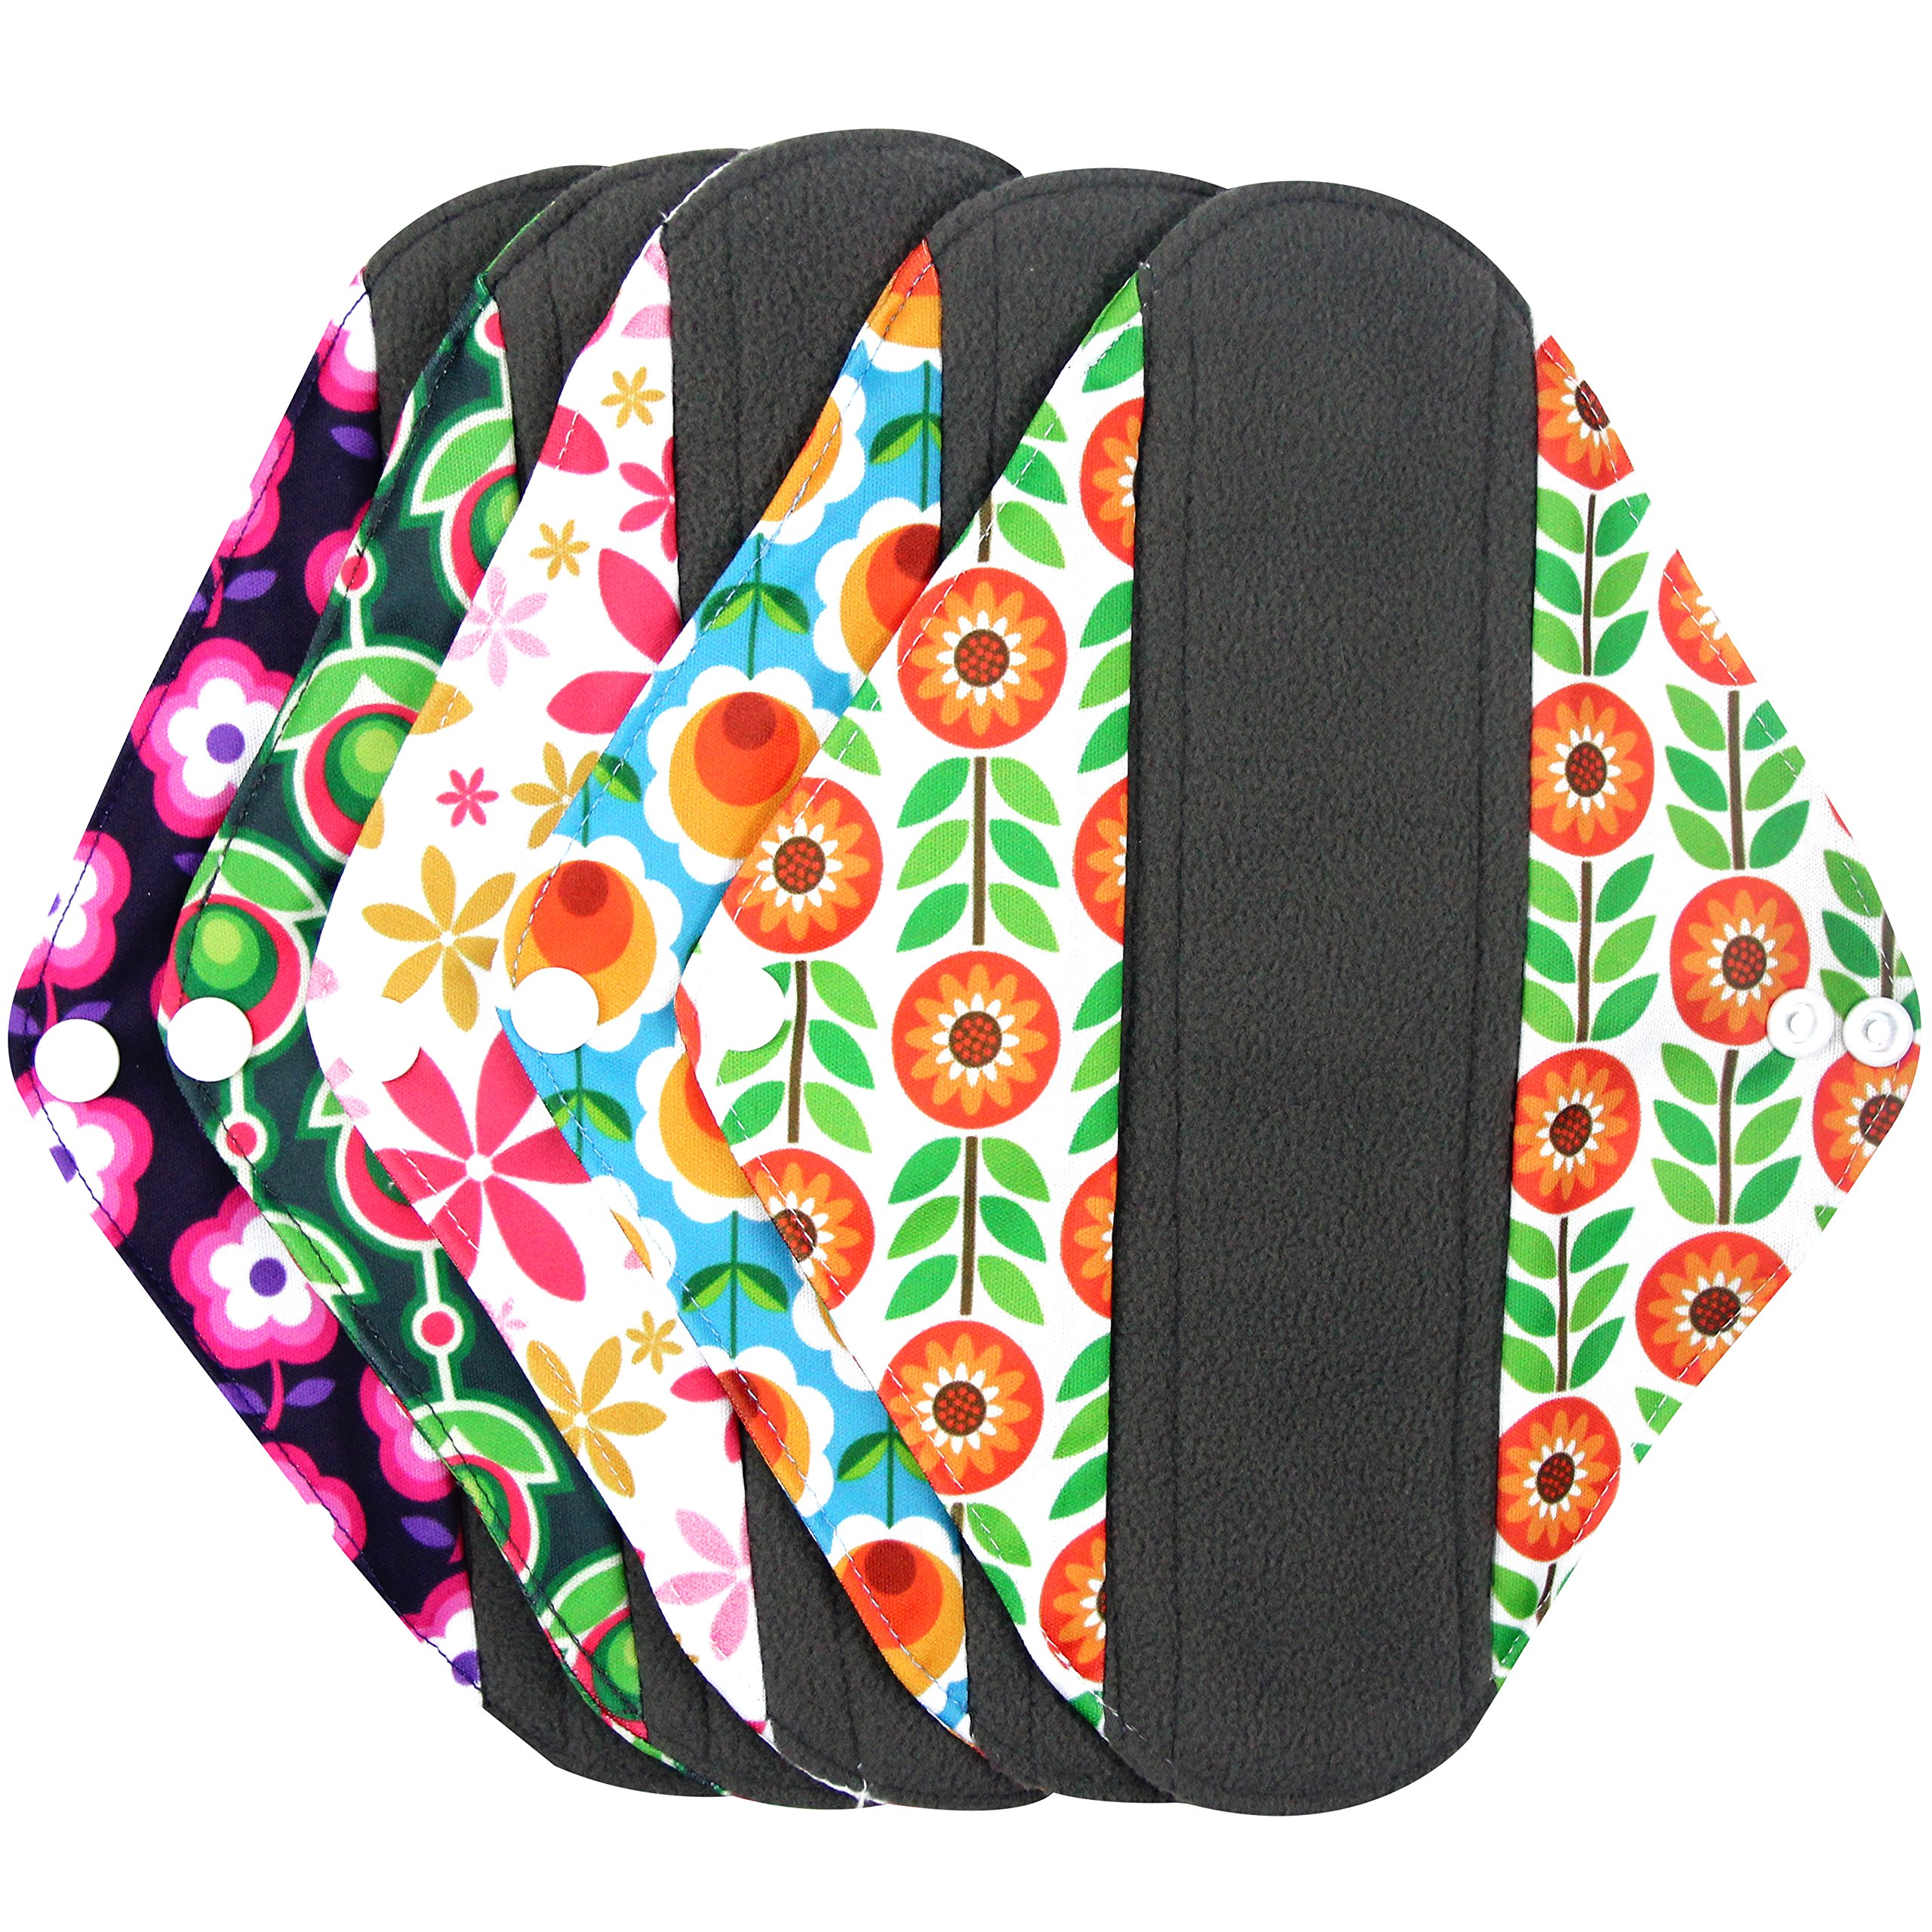 Wegreeco Bamboo Reusable Sanitary Pads - Cloth Sanitary Pads - Pack of 5 (Medium,Flower)